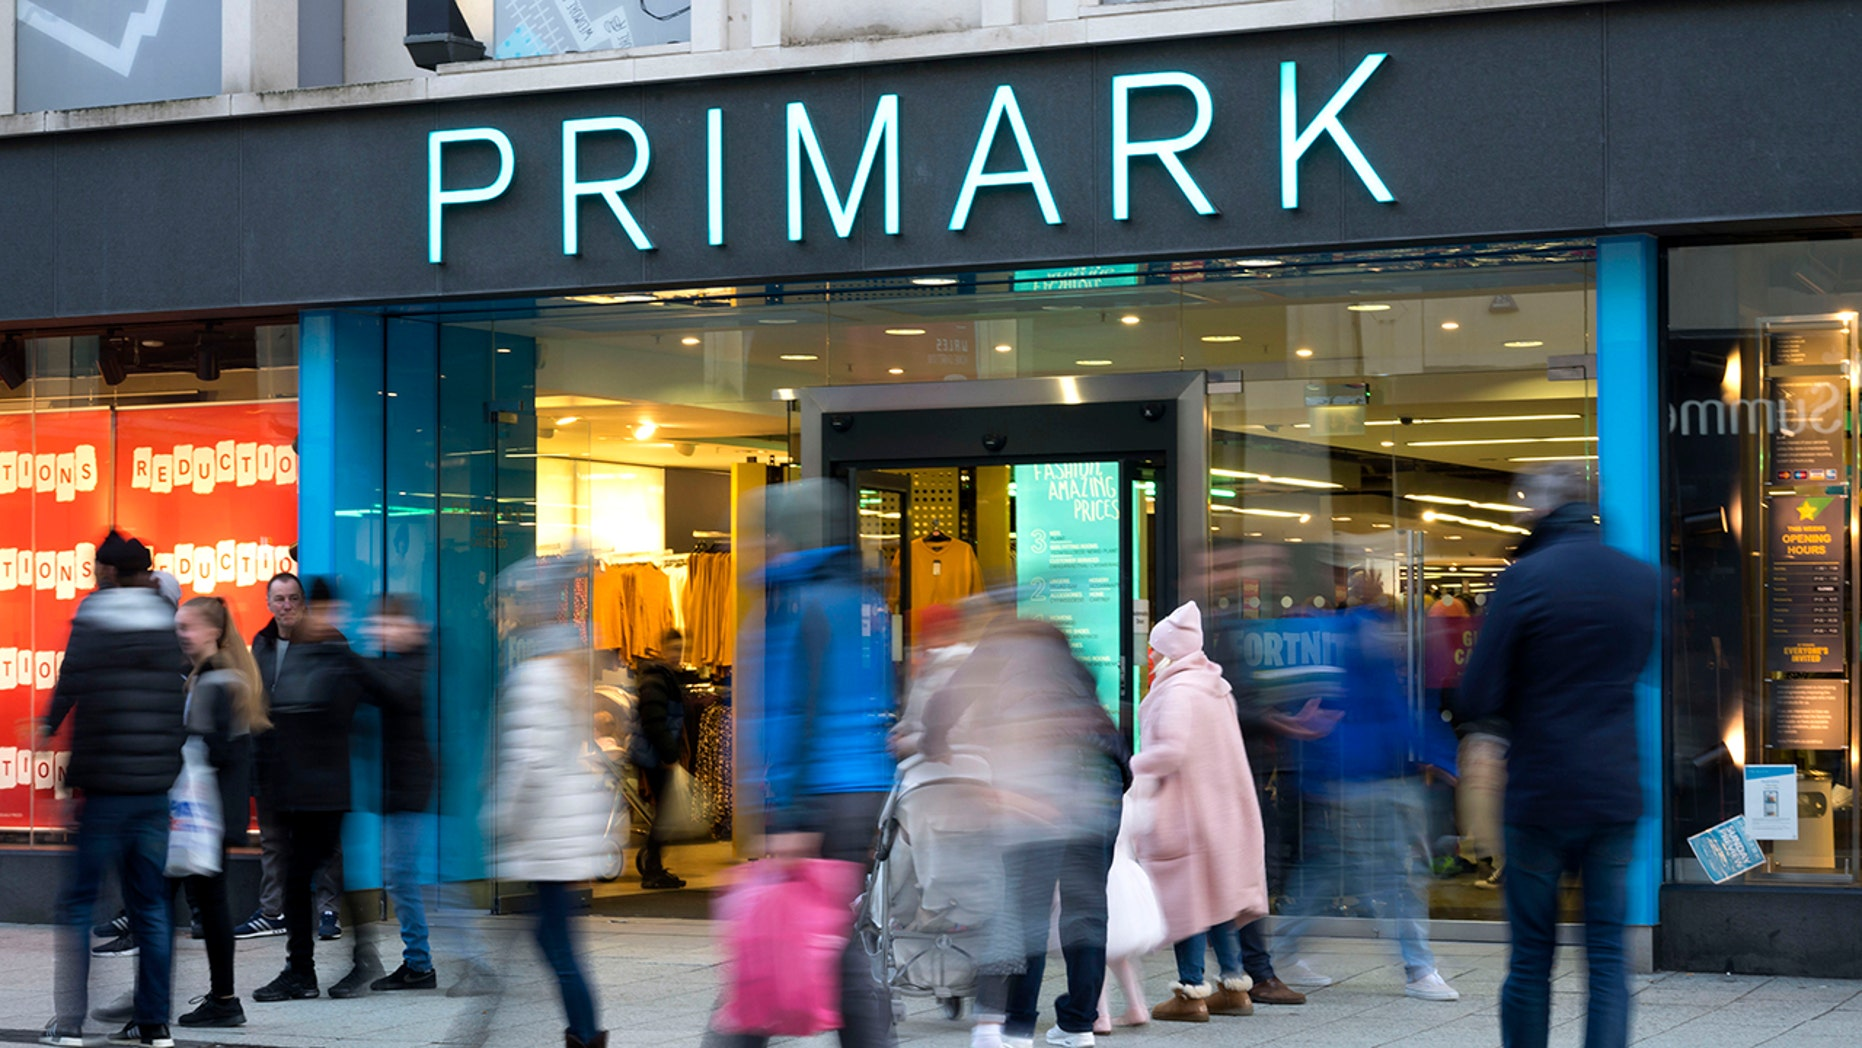 A Primark customer made a grisly discovery.